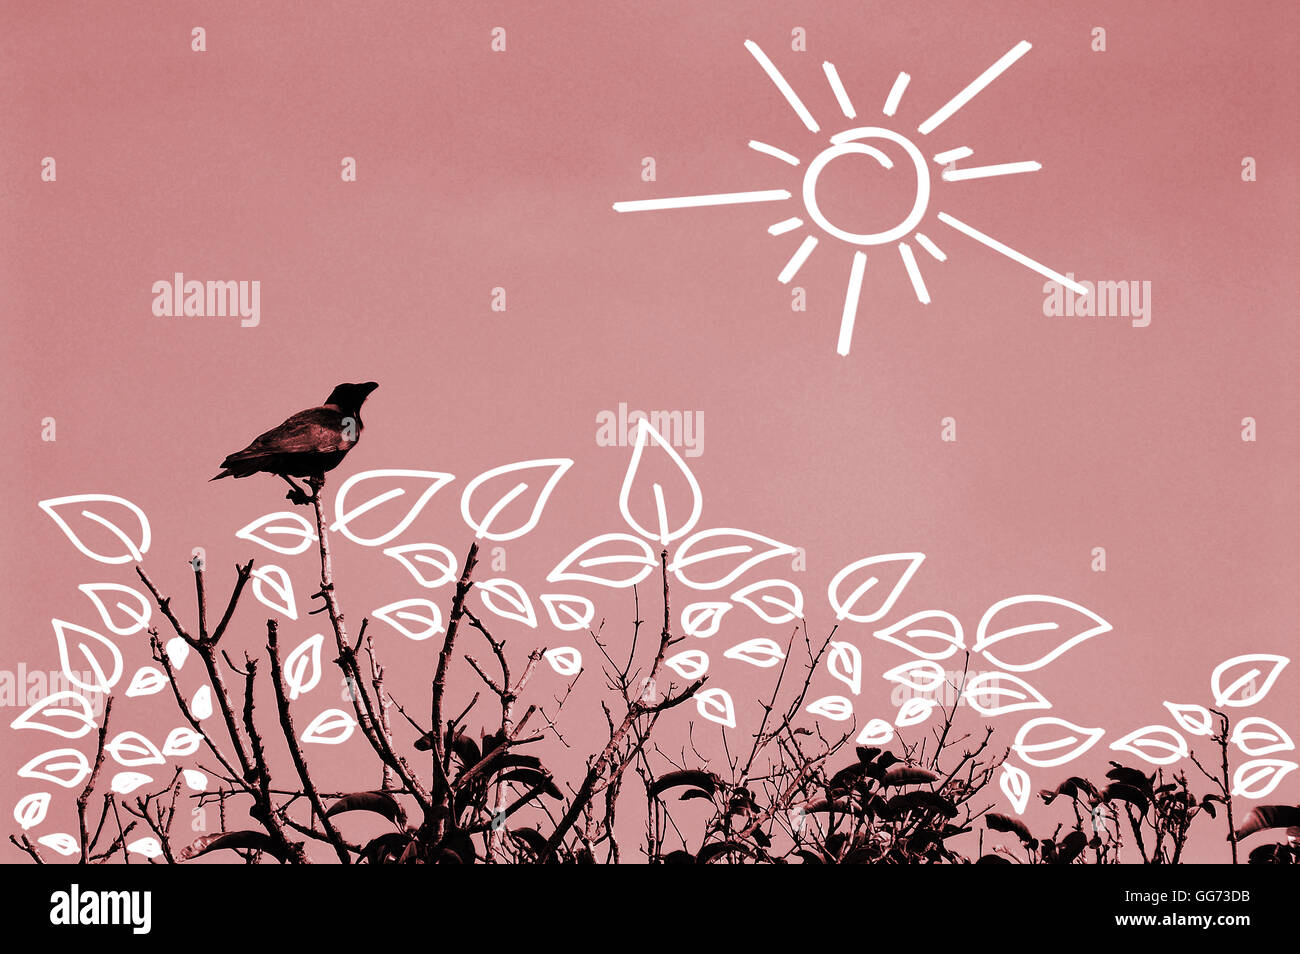 Vintage looking summer sky landscape. A crow is sitting on top of a dying tree with no leaves. - Stock Image